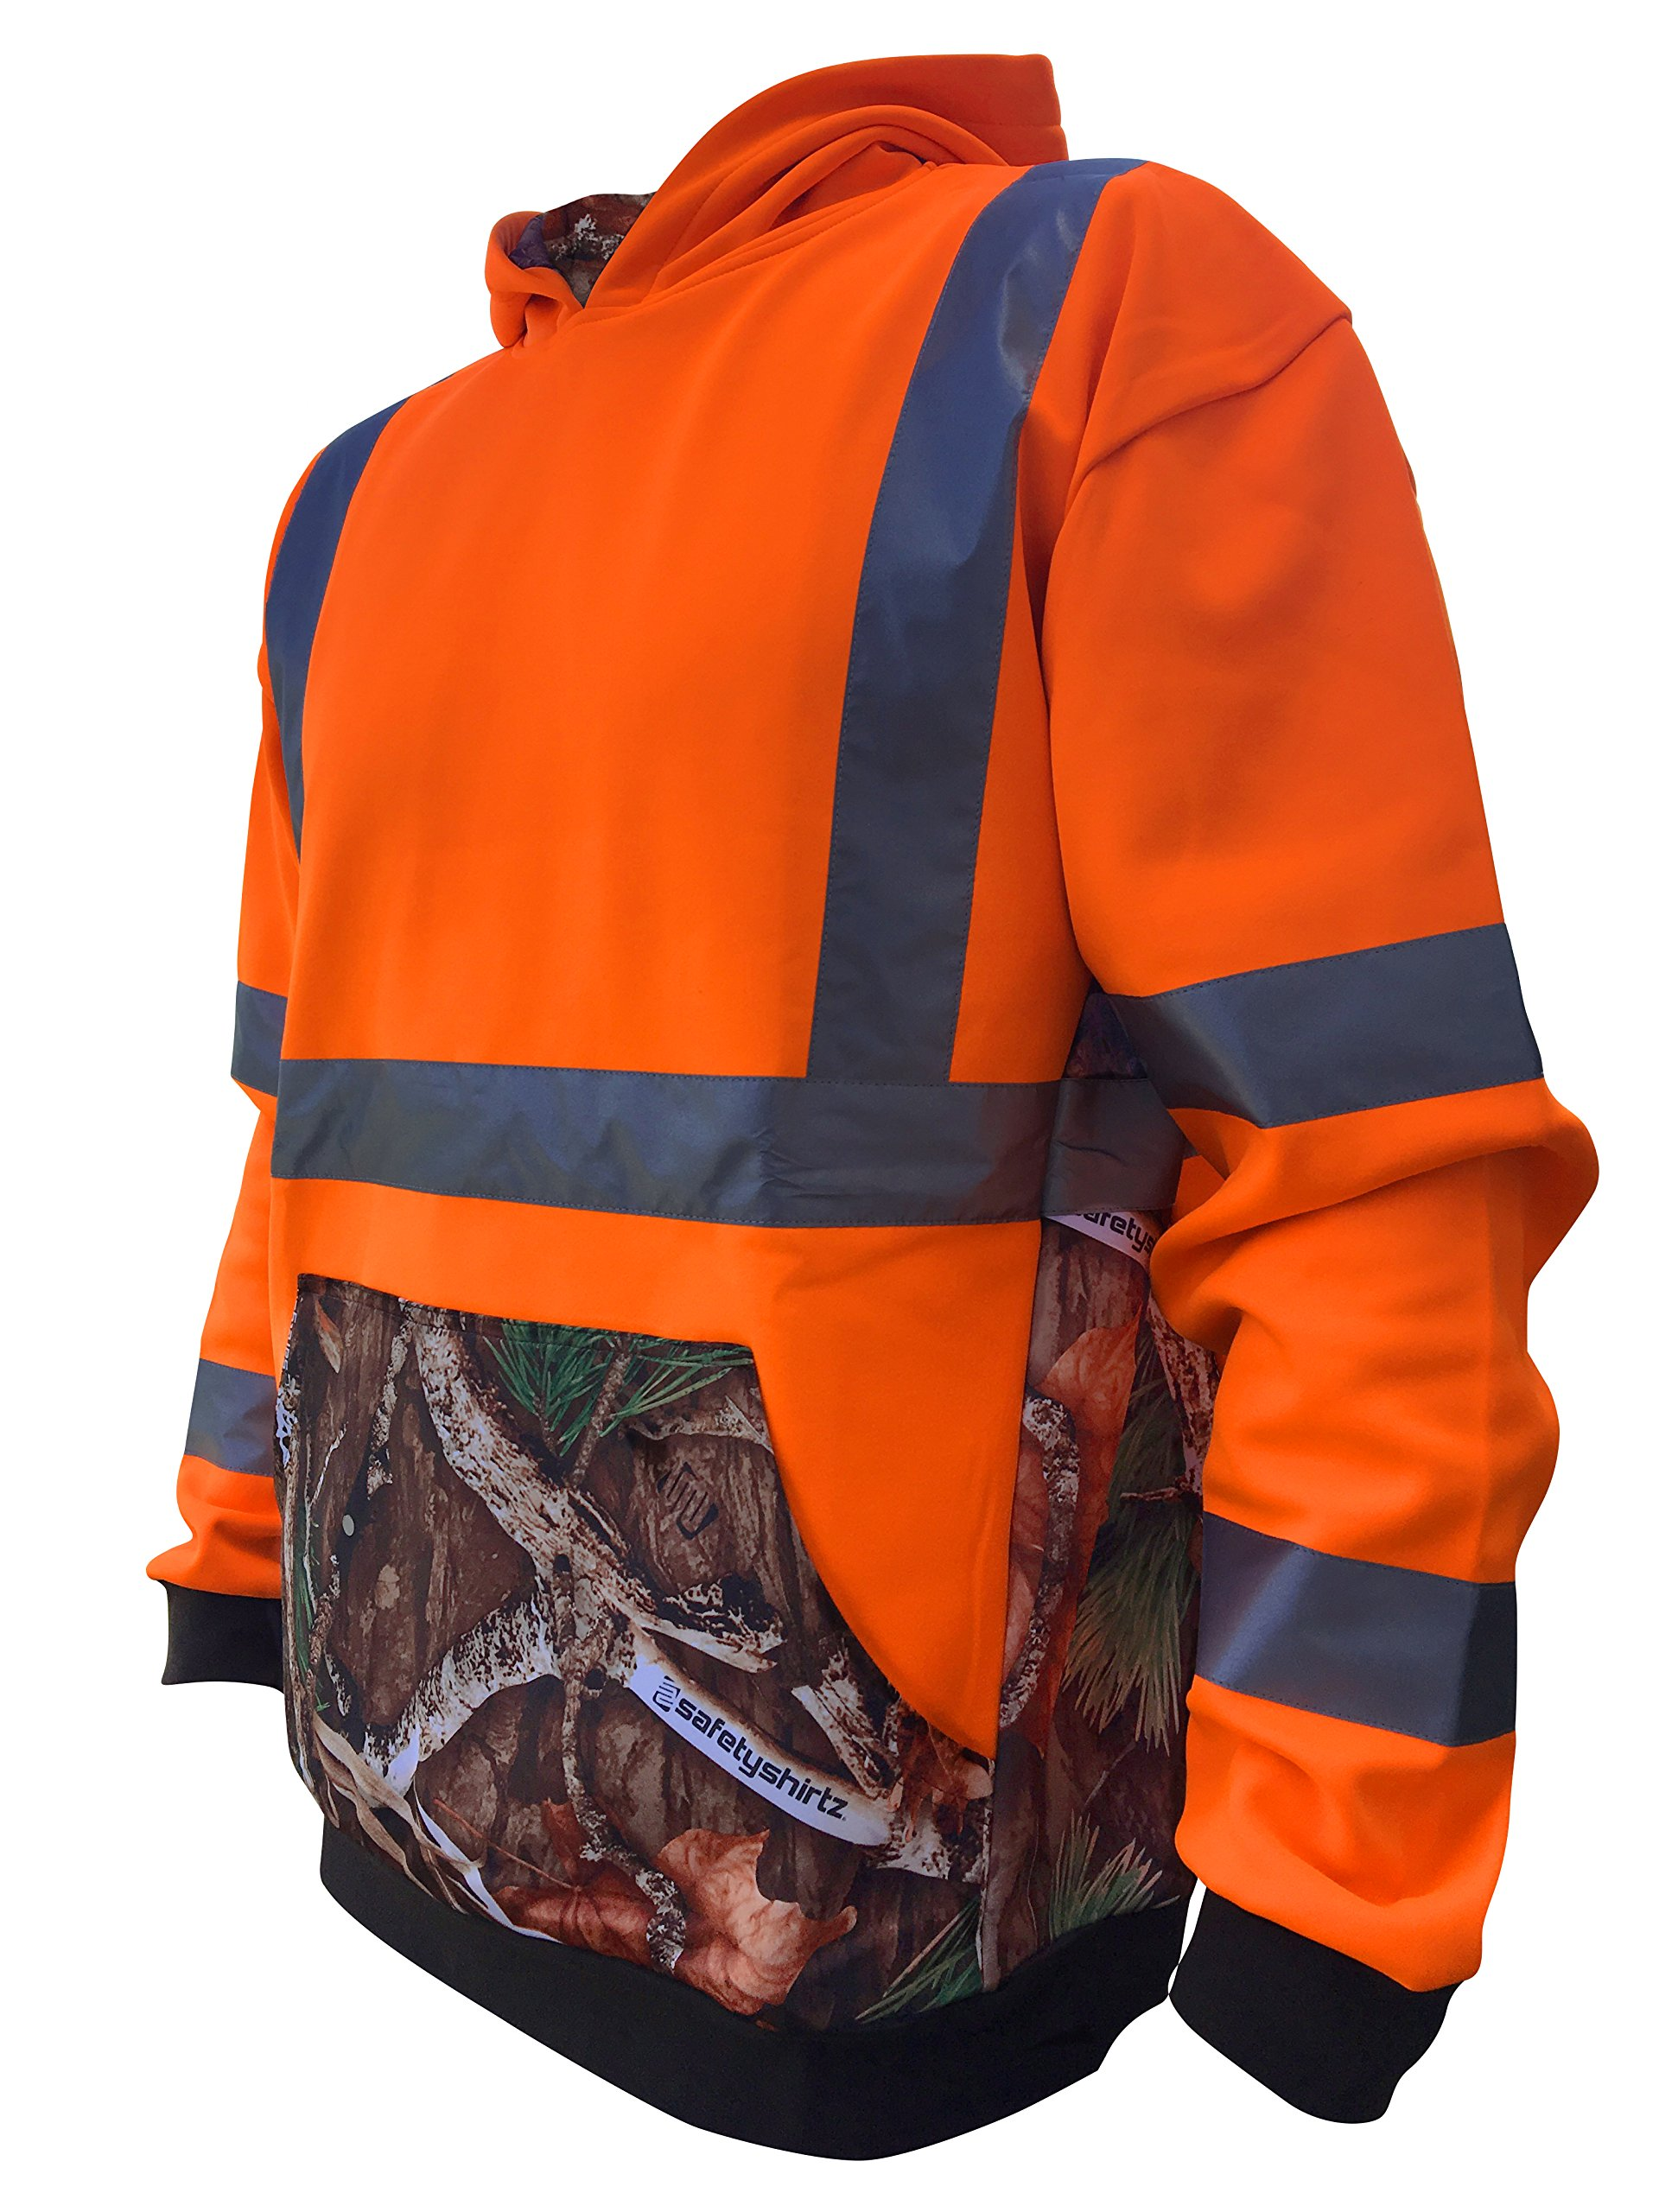 SafetyShirtz SS360 Deepwoods Camo Safety Hoody ANSI Class 3 2XL by SafetyShirtz